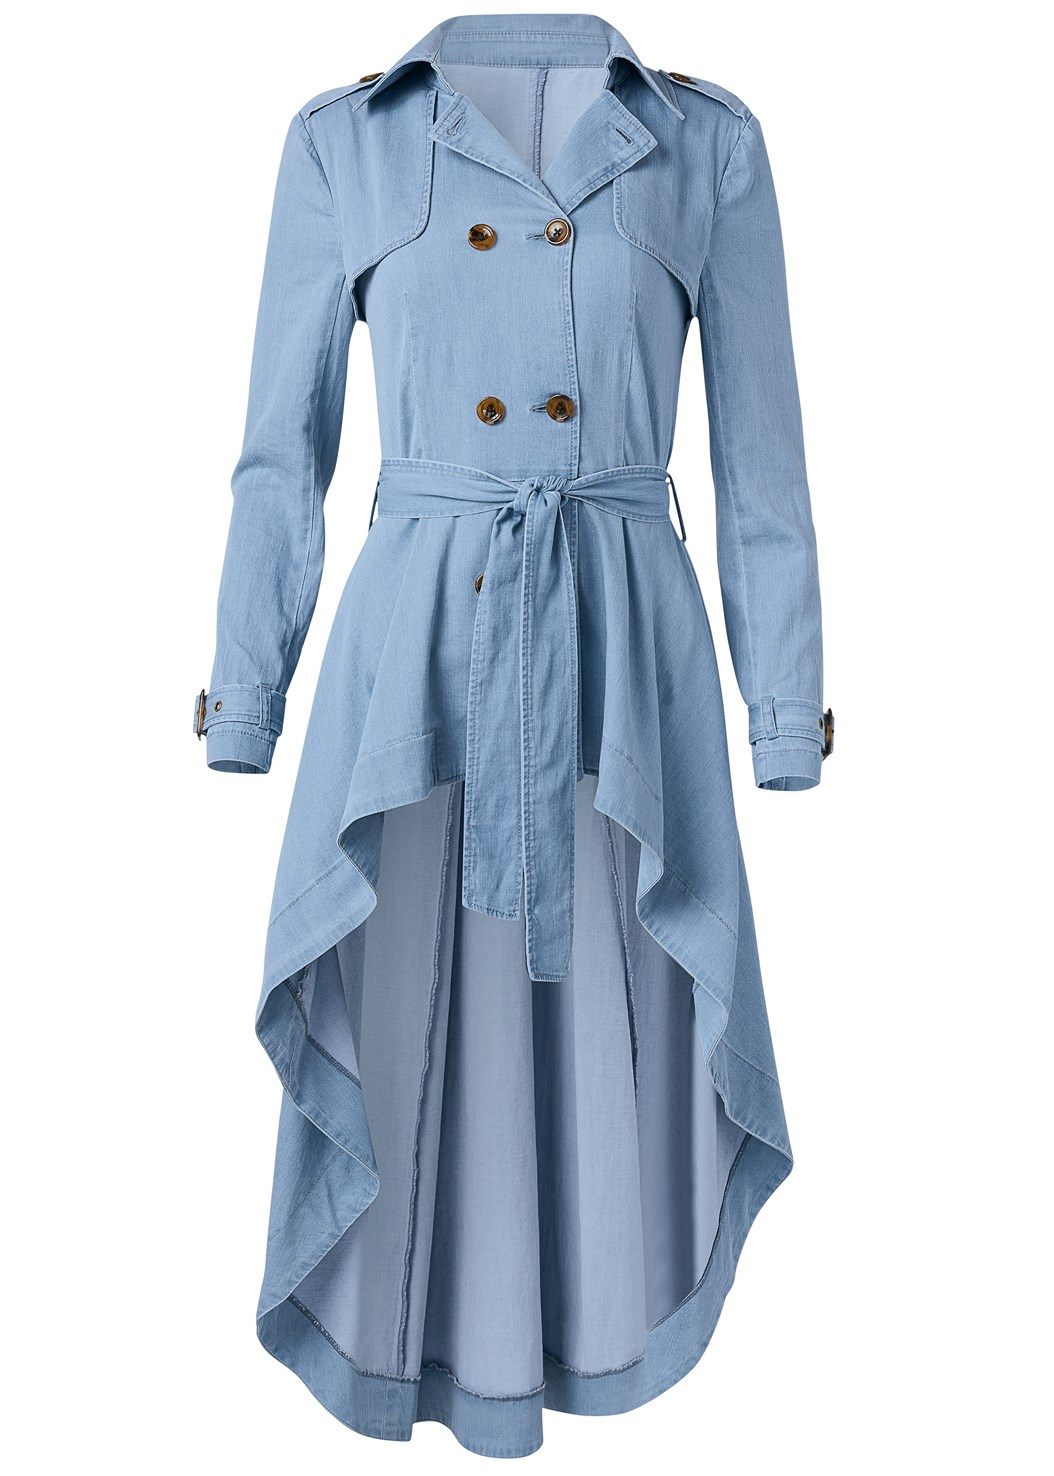 Denim Trench Coat,Mid Rise Slimming Stretch Jeggings,Lucite Detail Print Heels